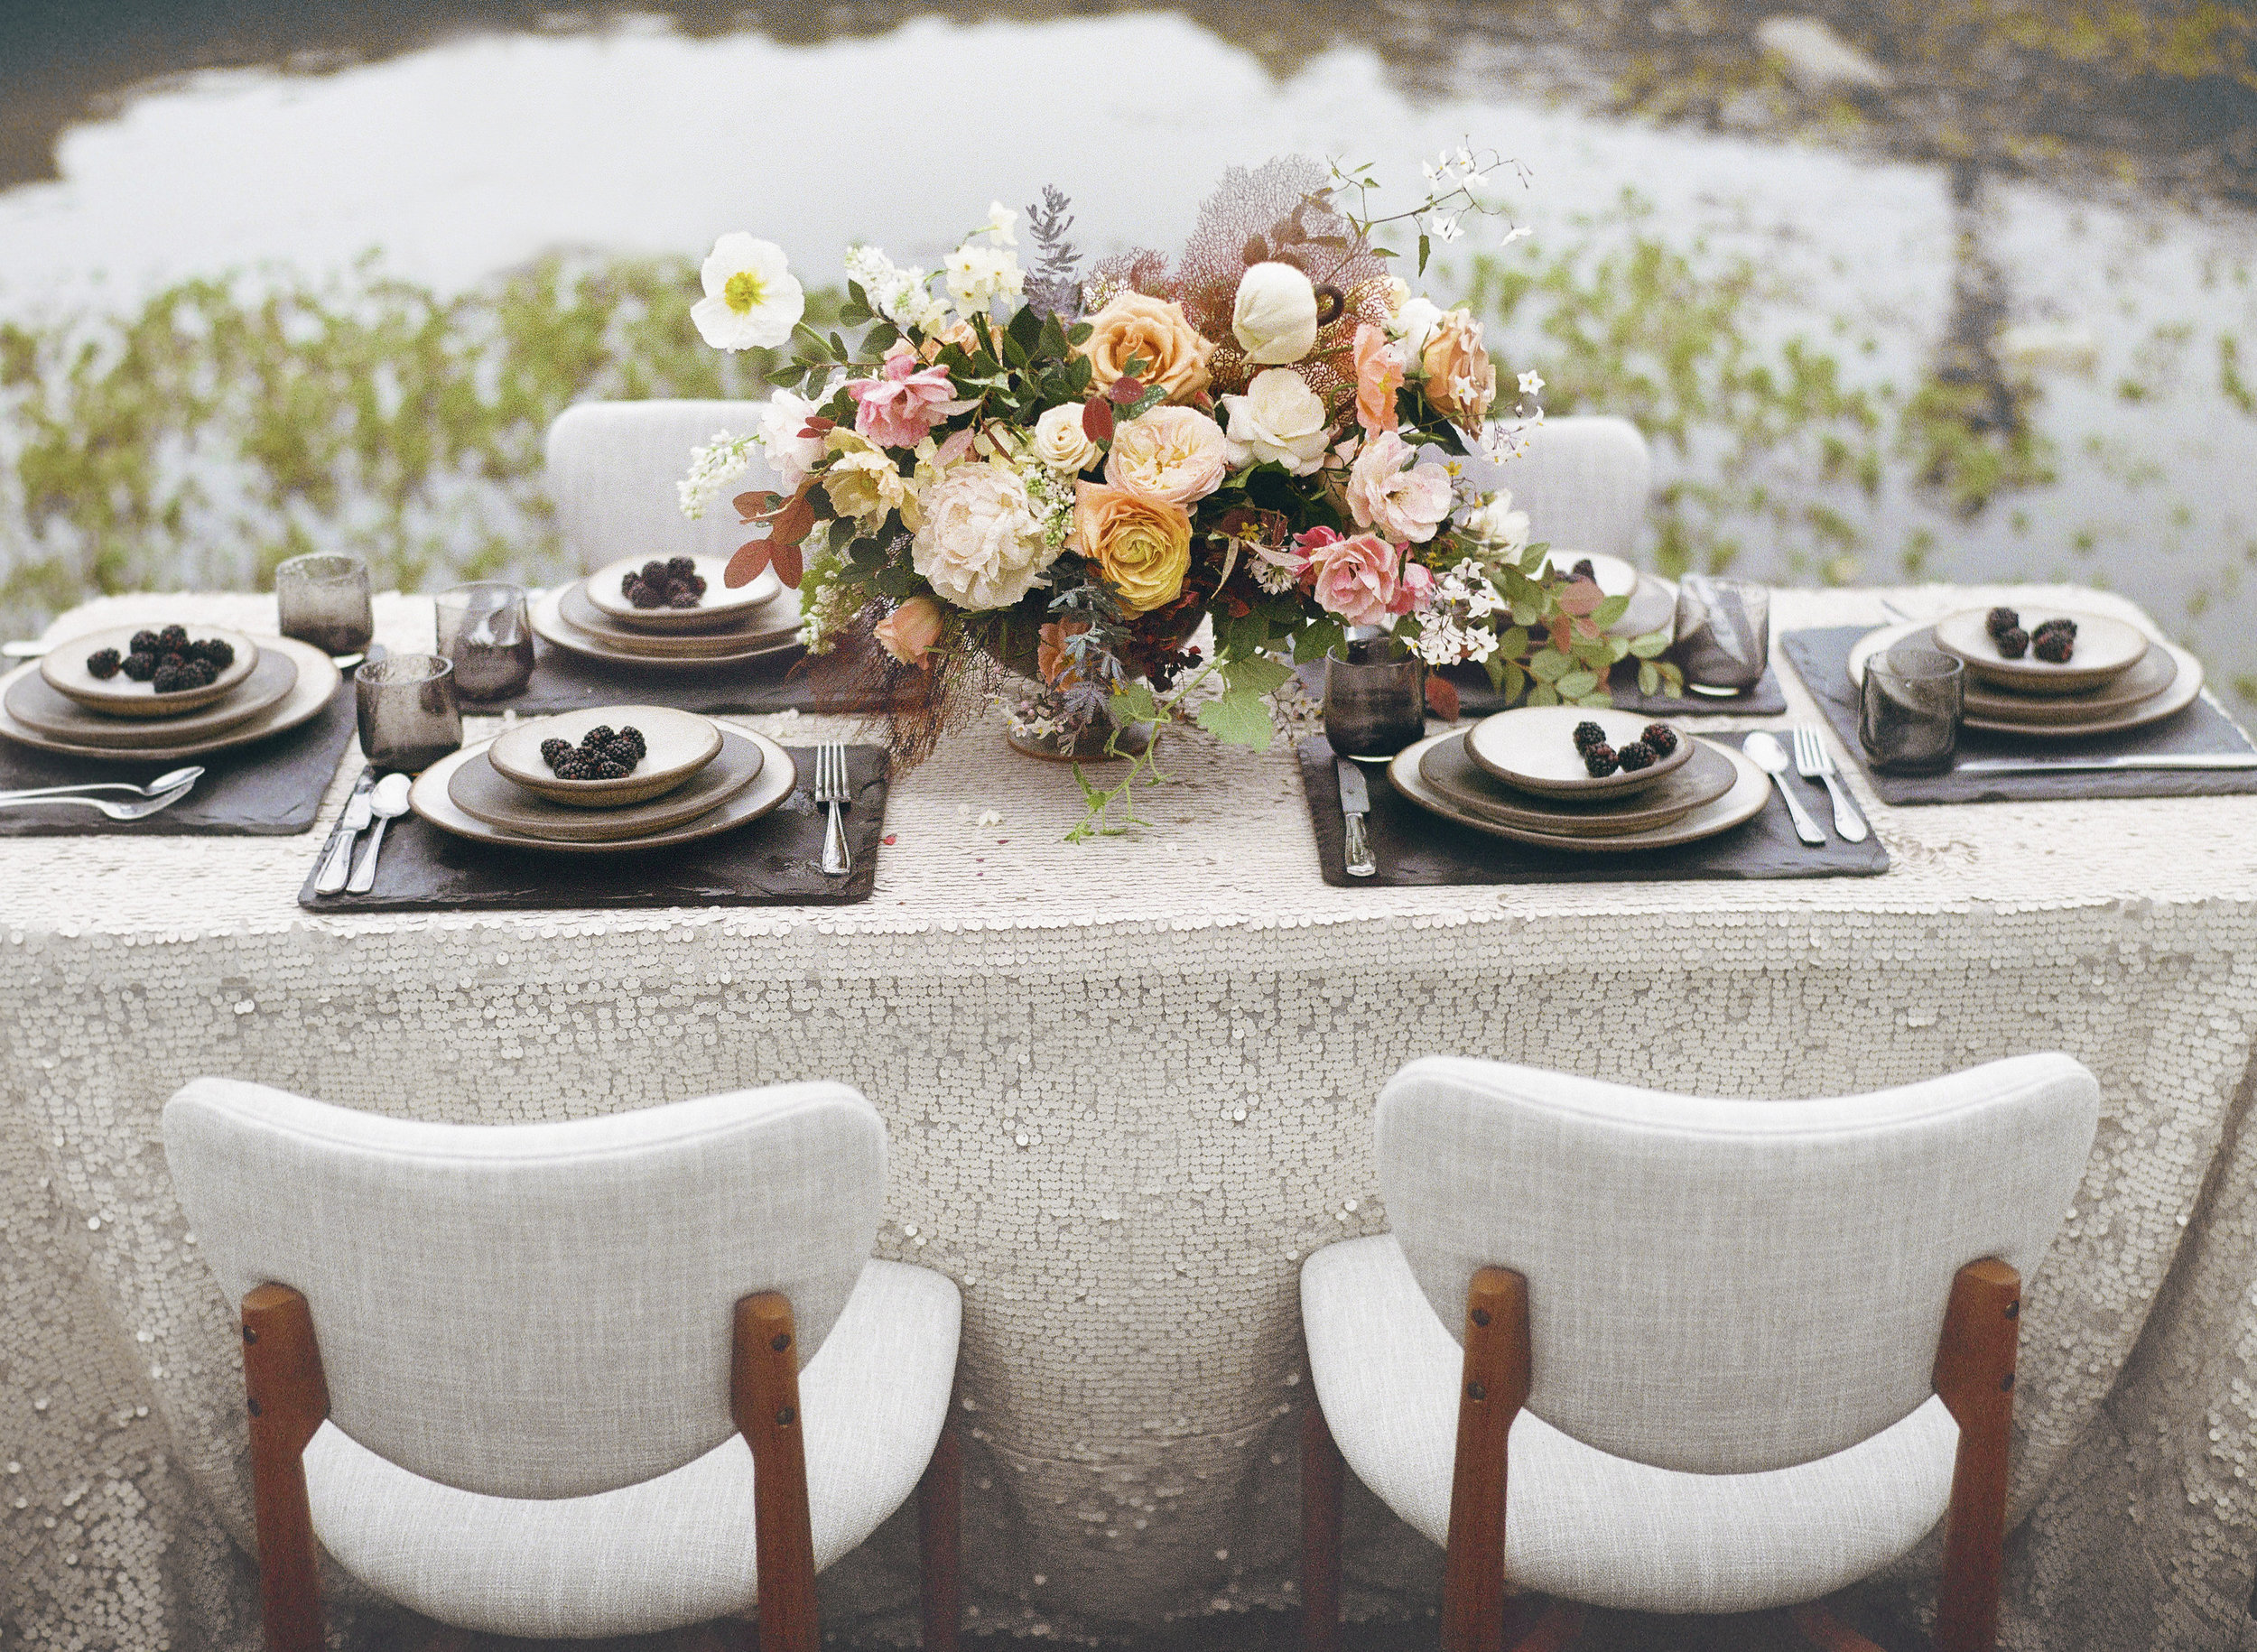 055+outlive+creative+styled+wedding+sutro+baths.jpg